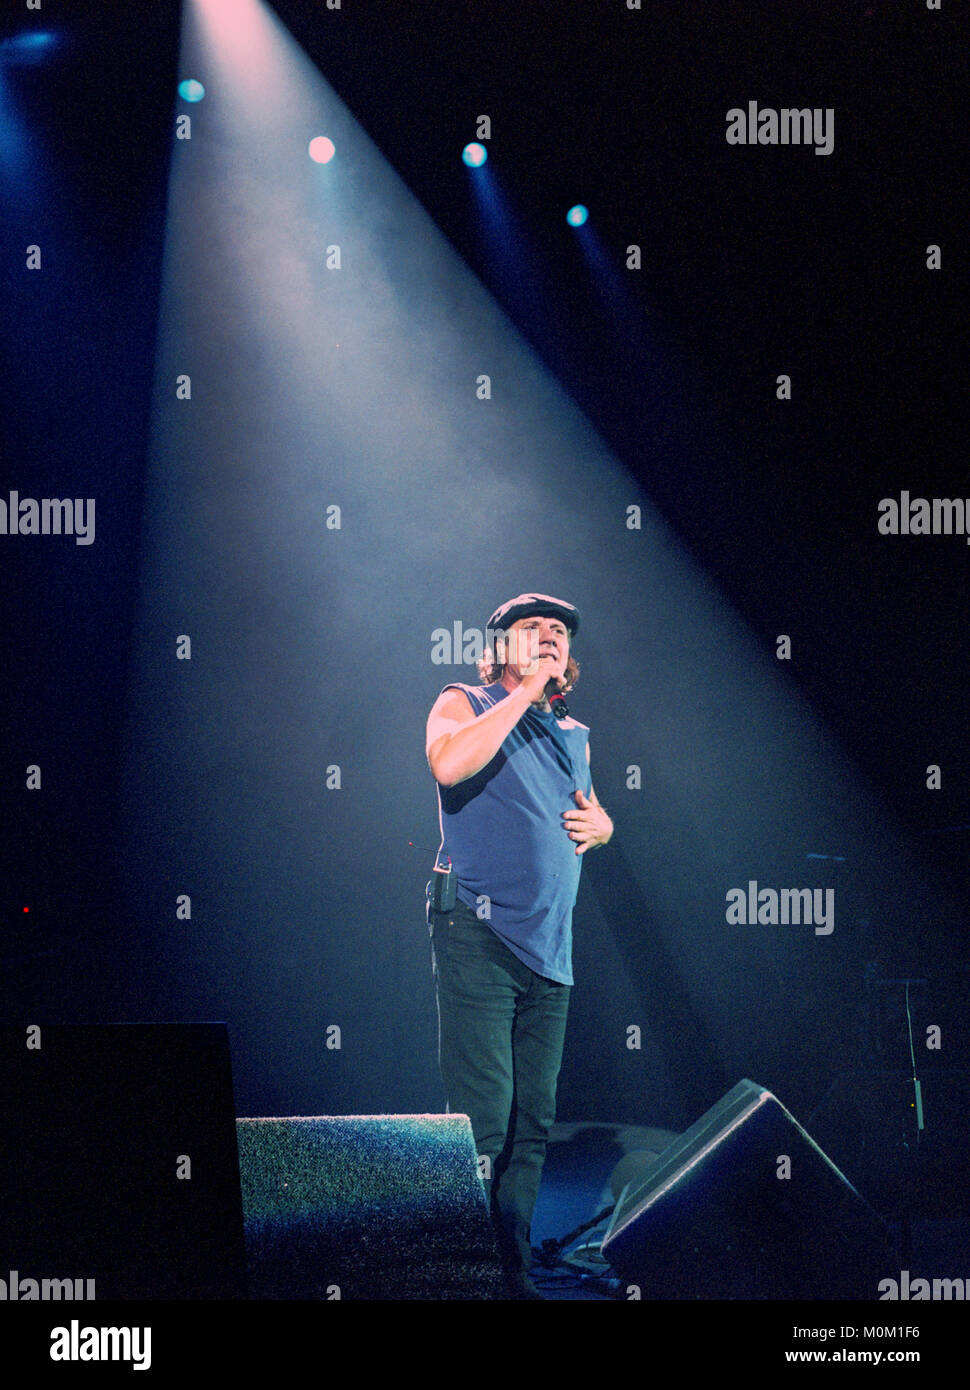 Acdc Stock Photos & Acdc Stock Images - Alamy